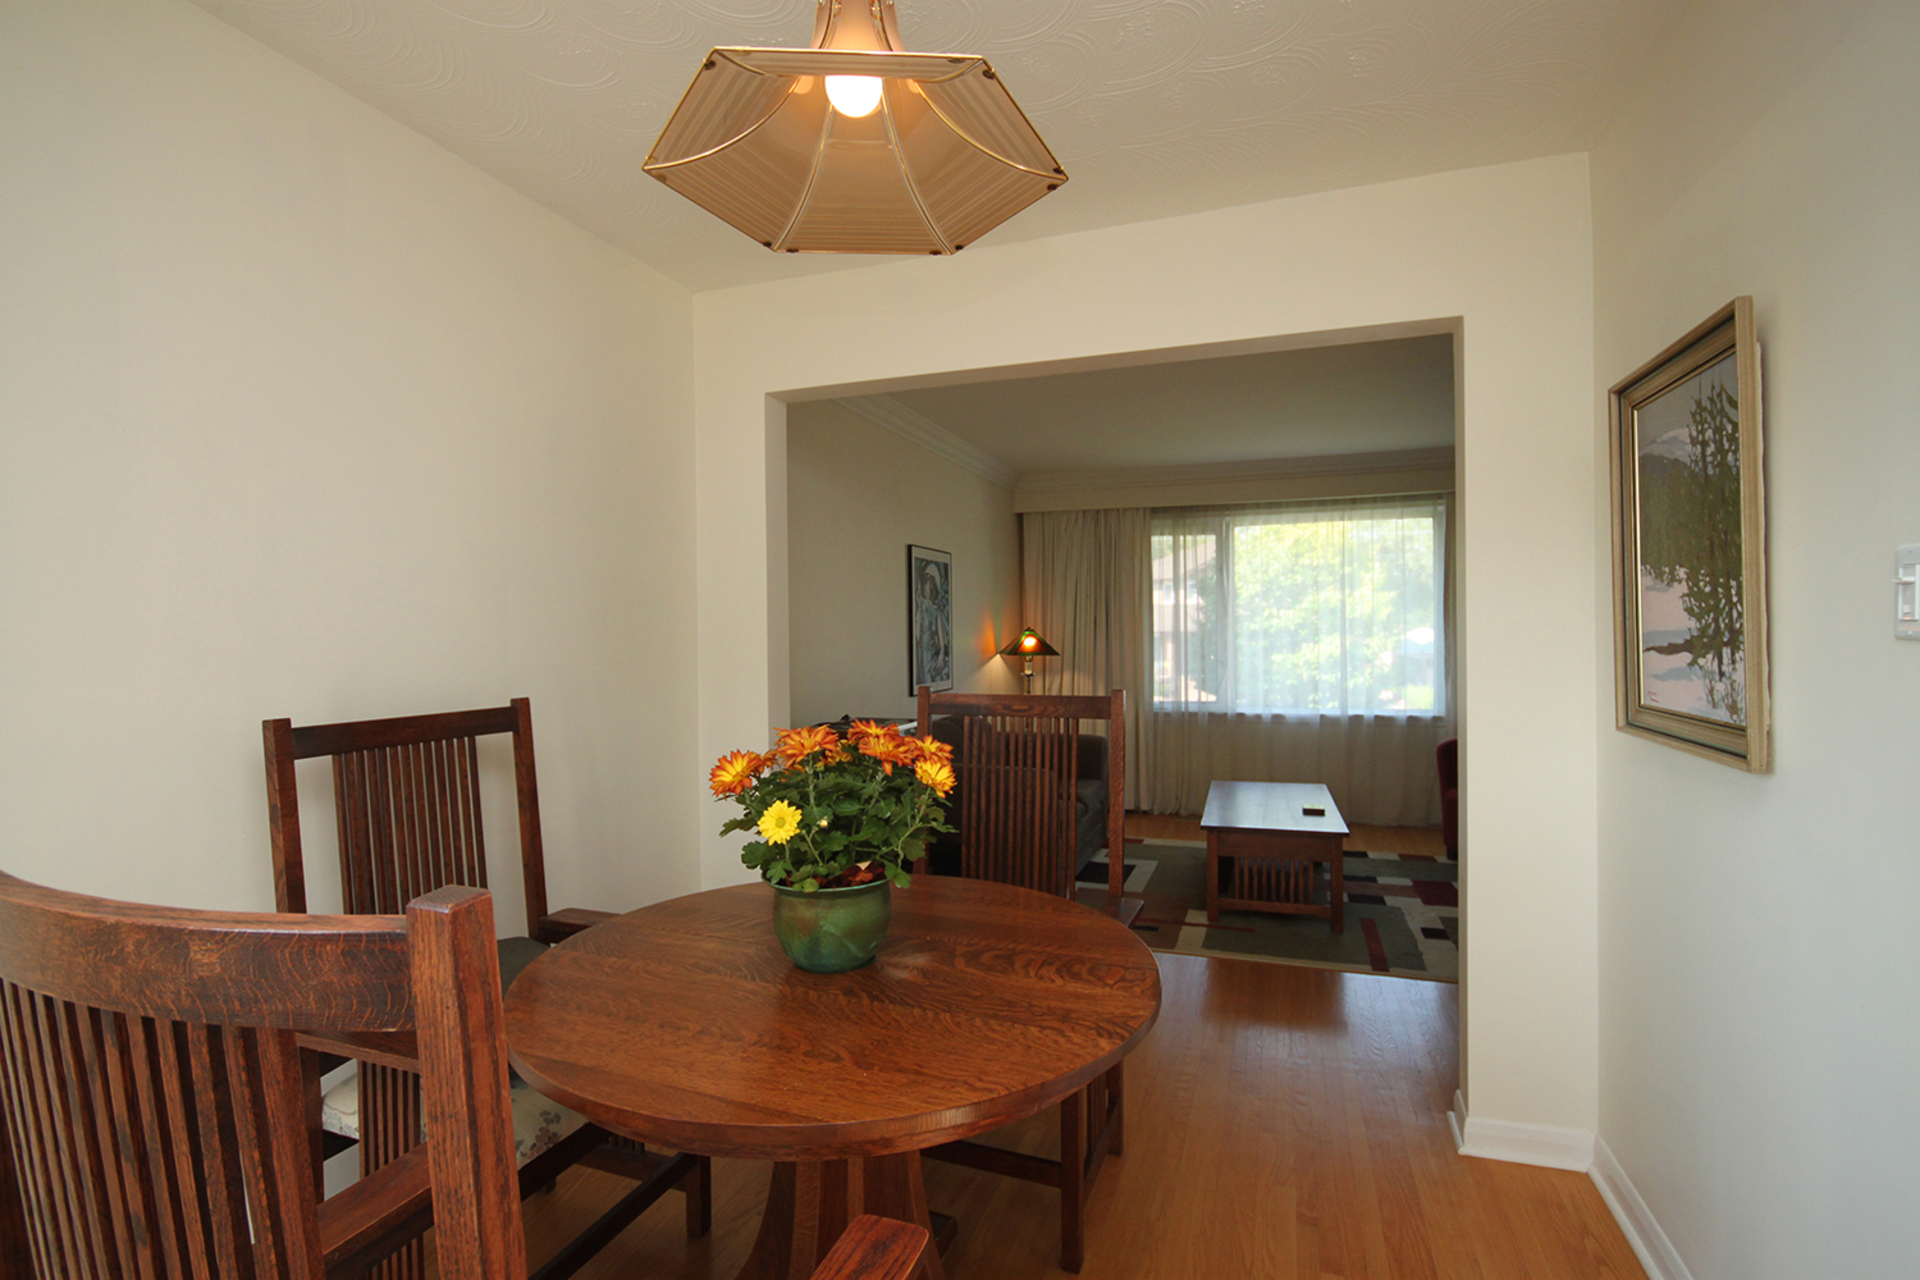 Dining Room at 11 Cleta Drive, Kennedy Park, Toronto